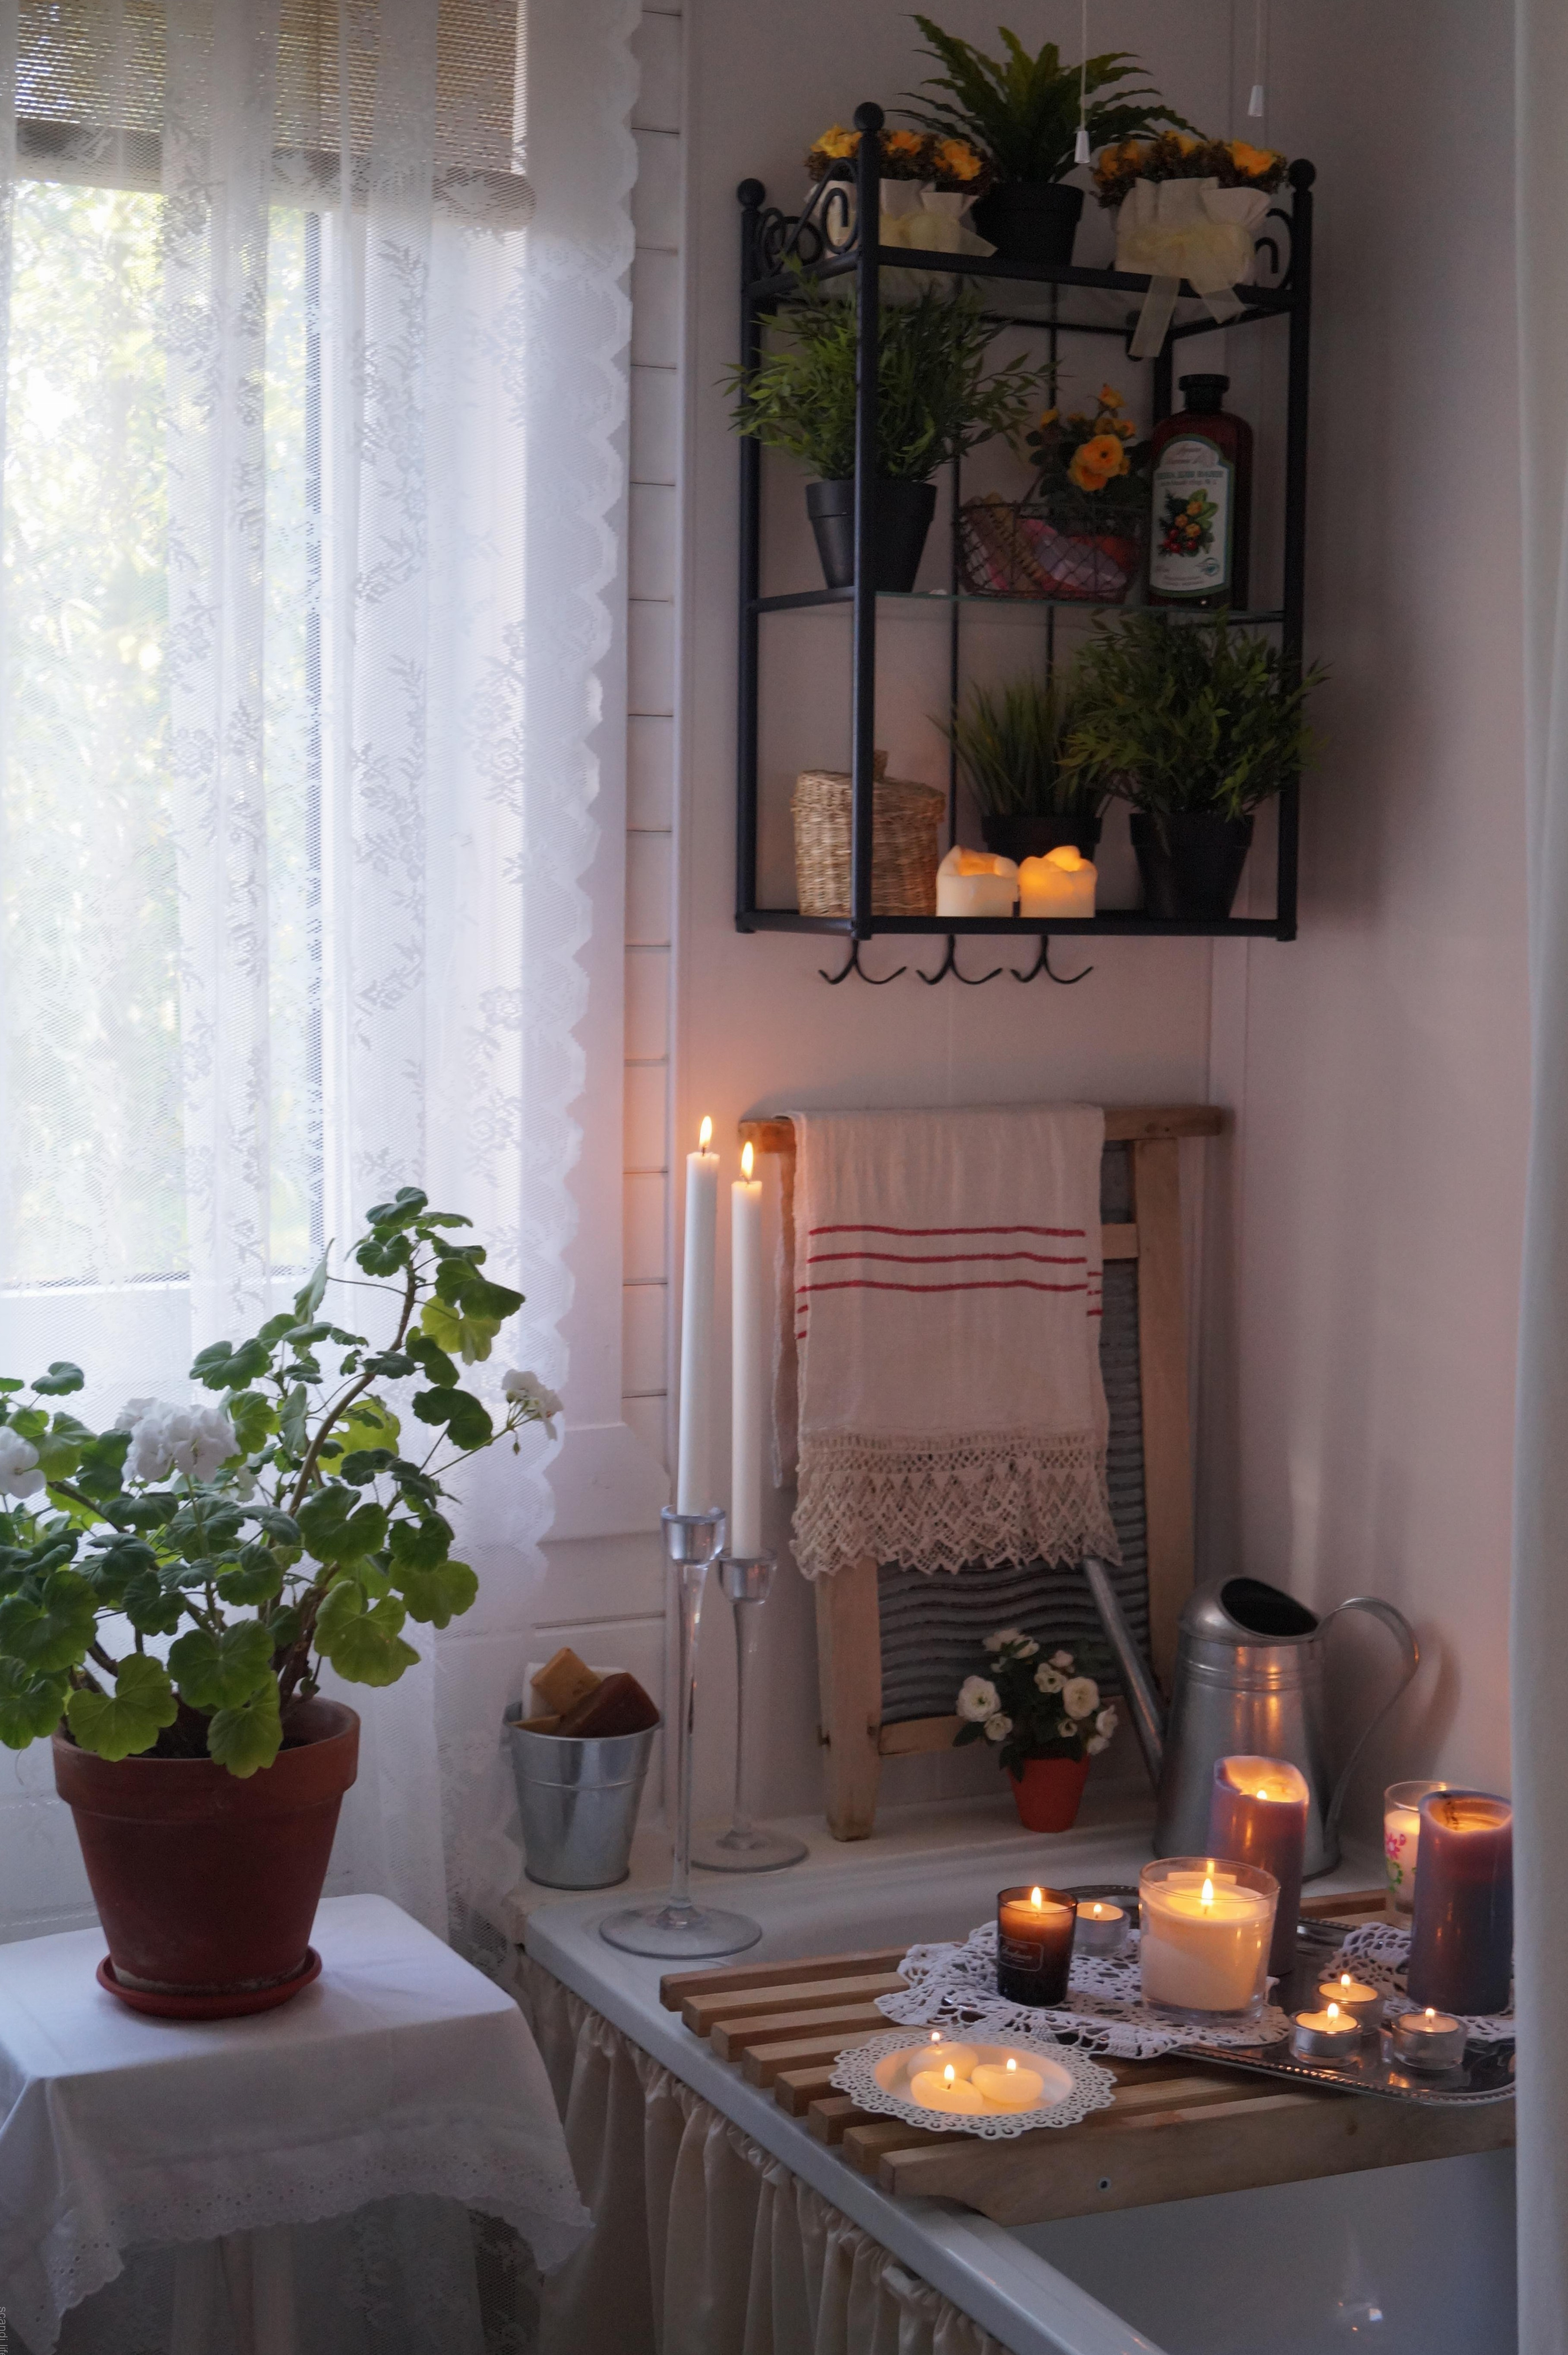 22_scandi.life_roomtour5